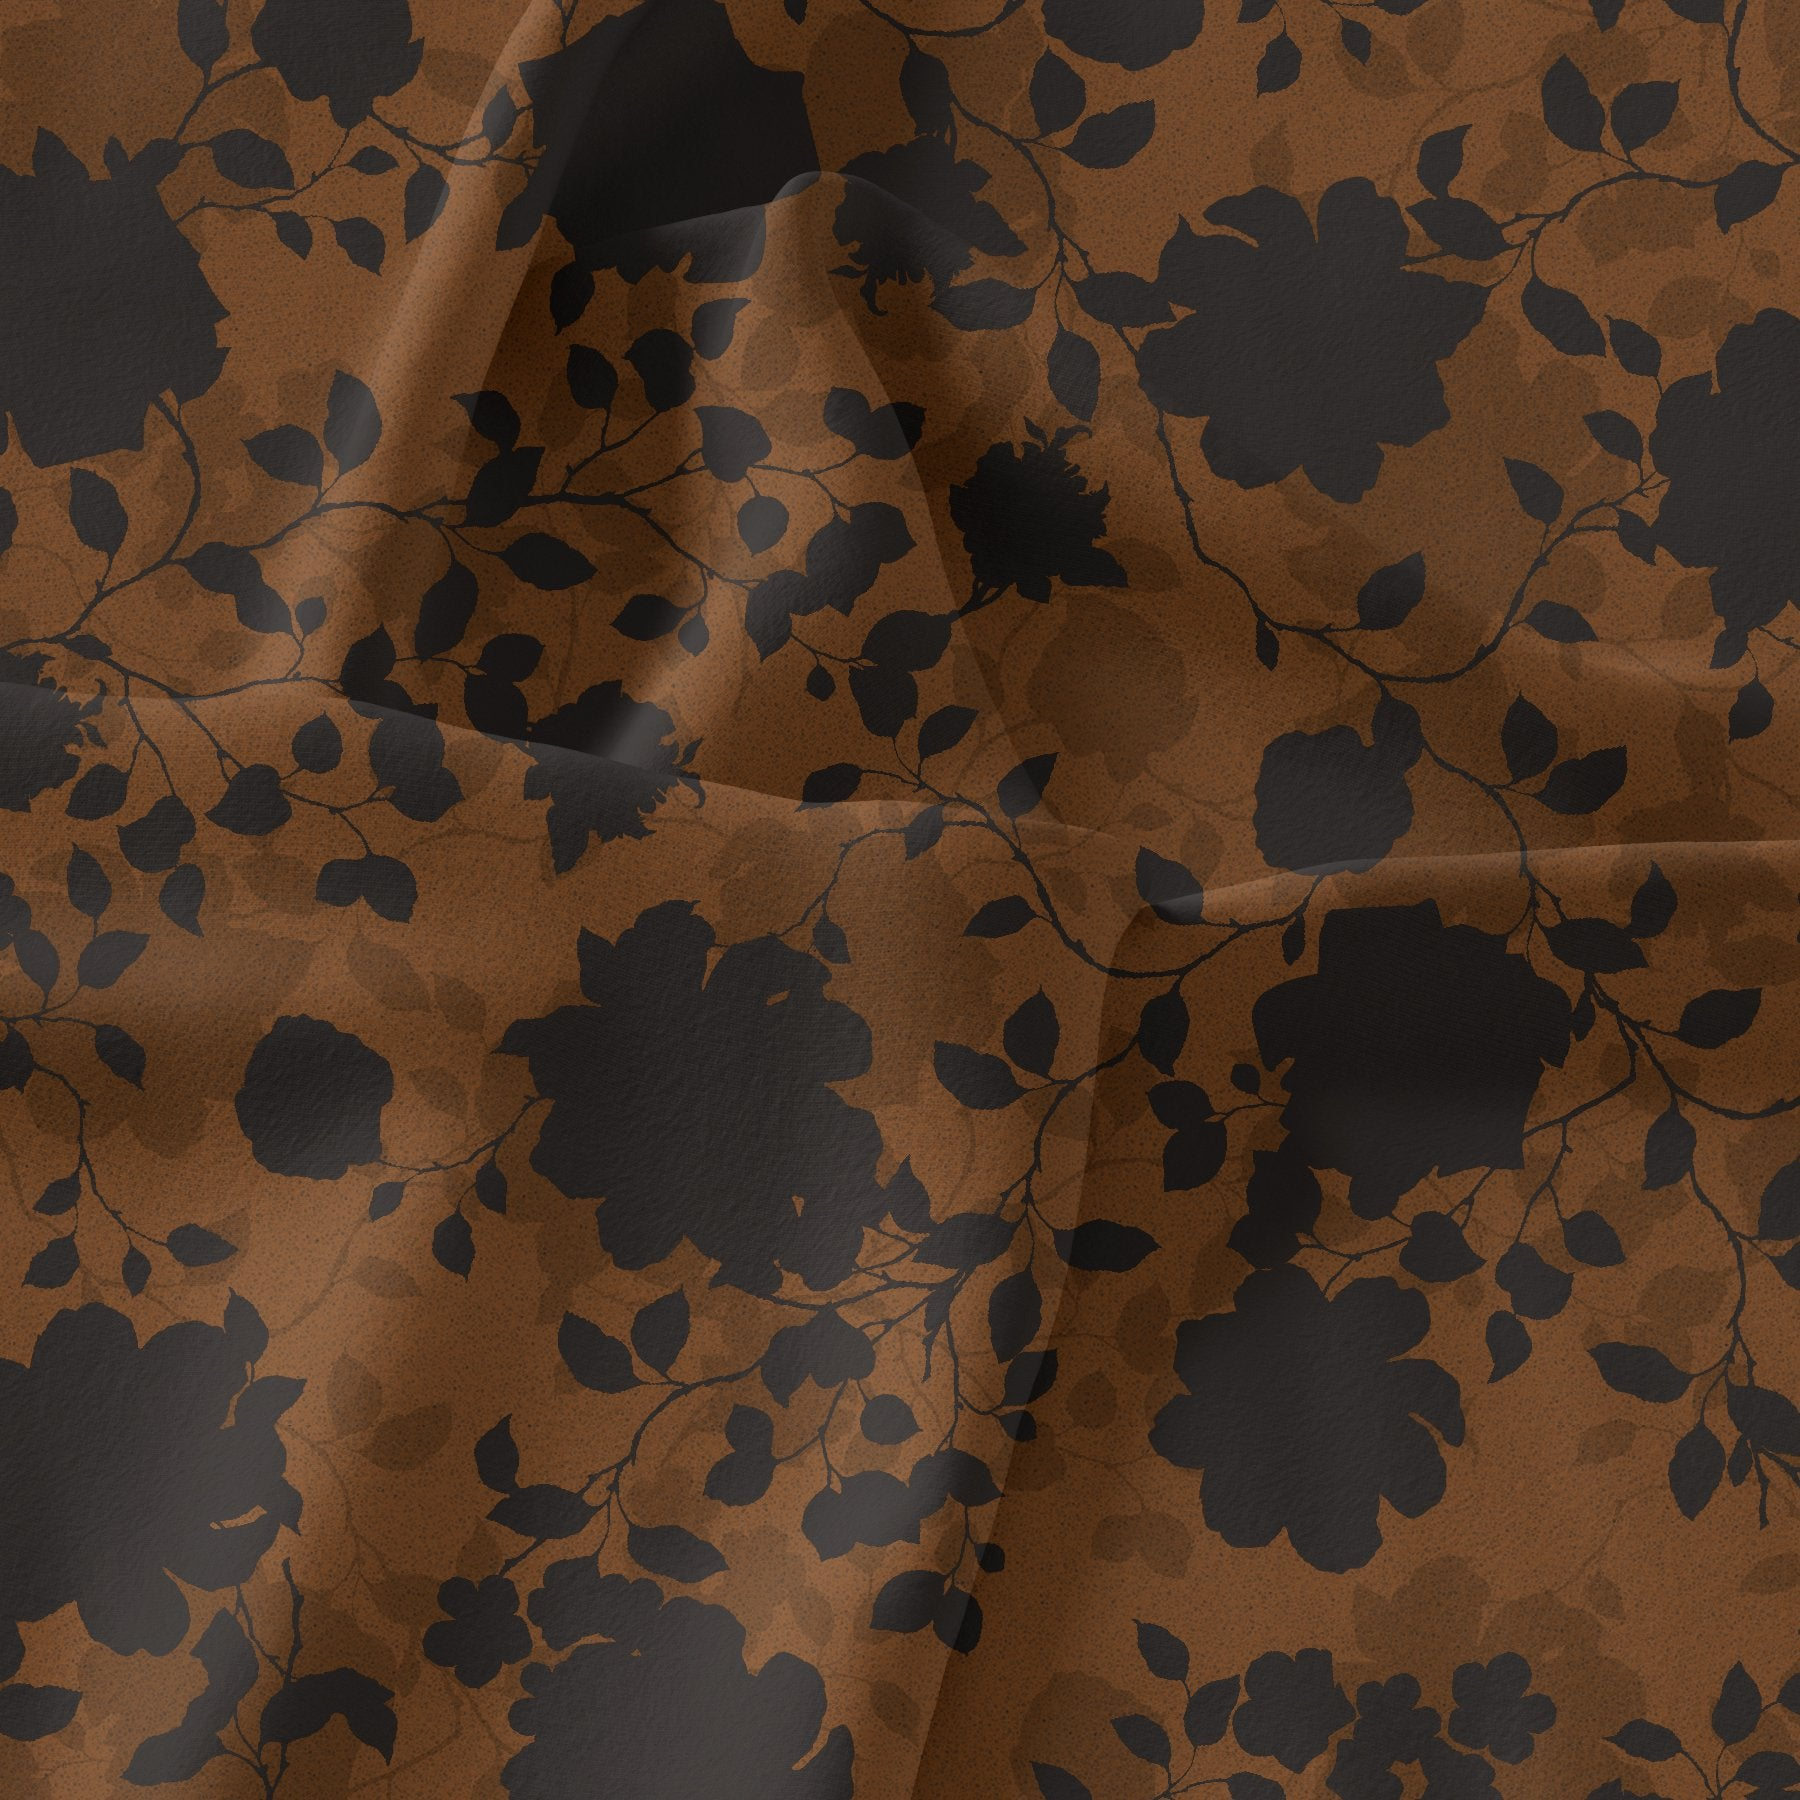 Black And Rustic Look Flower Digital Printed Fabric - Weightless